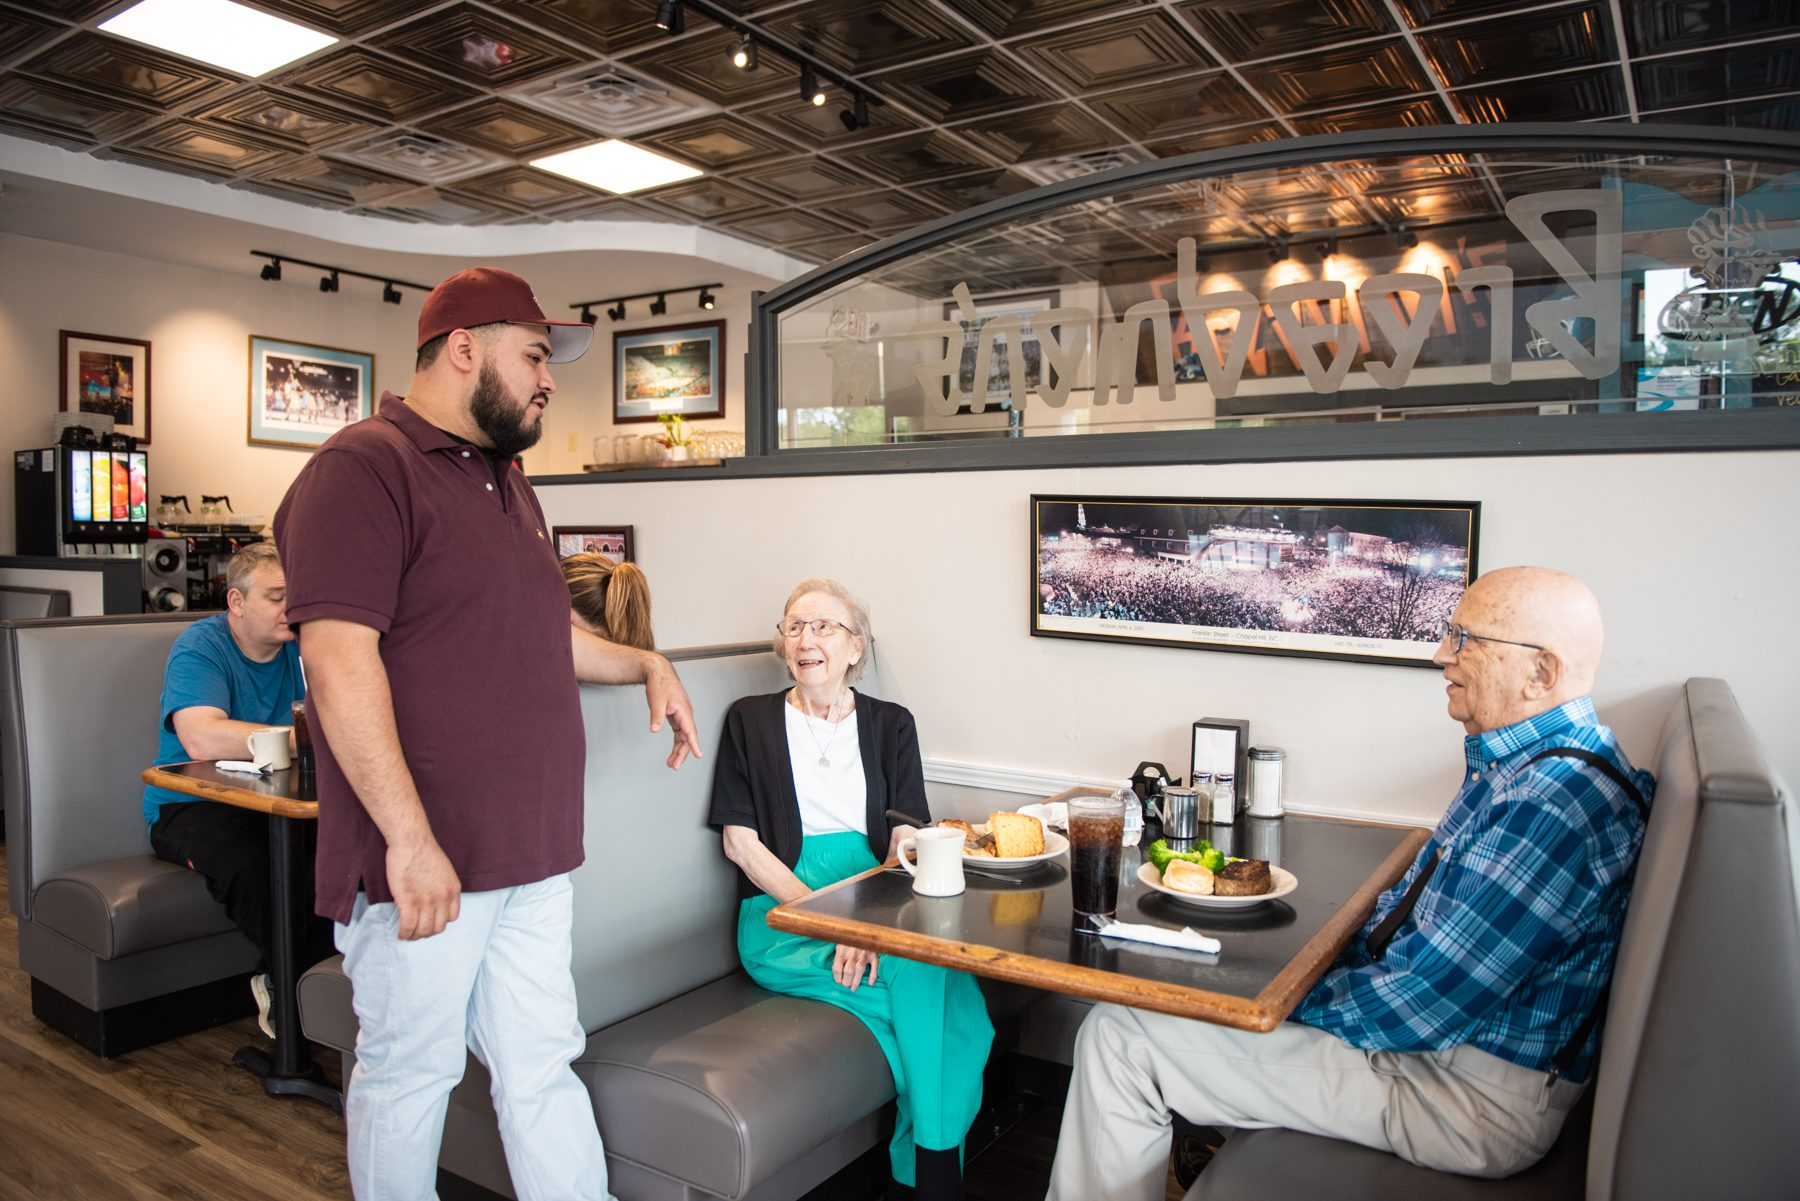 Peggy Hollingsworth and Tom Hollingsworth have lived in Chapel Hill since 1966 and been going to Breadman's since 1995. They visit the restaurant three to four times a week.